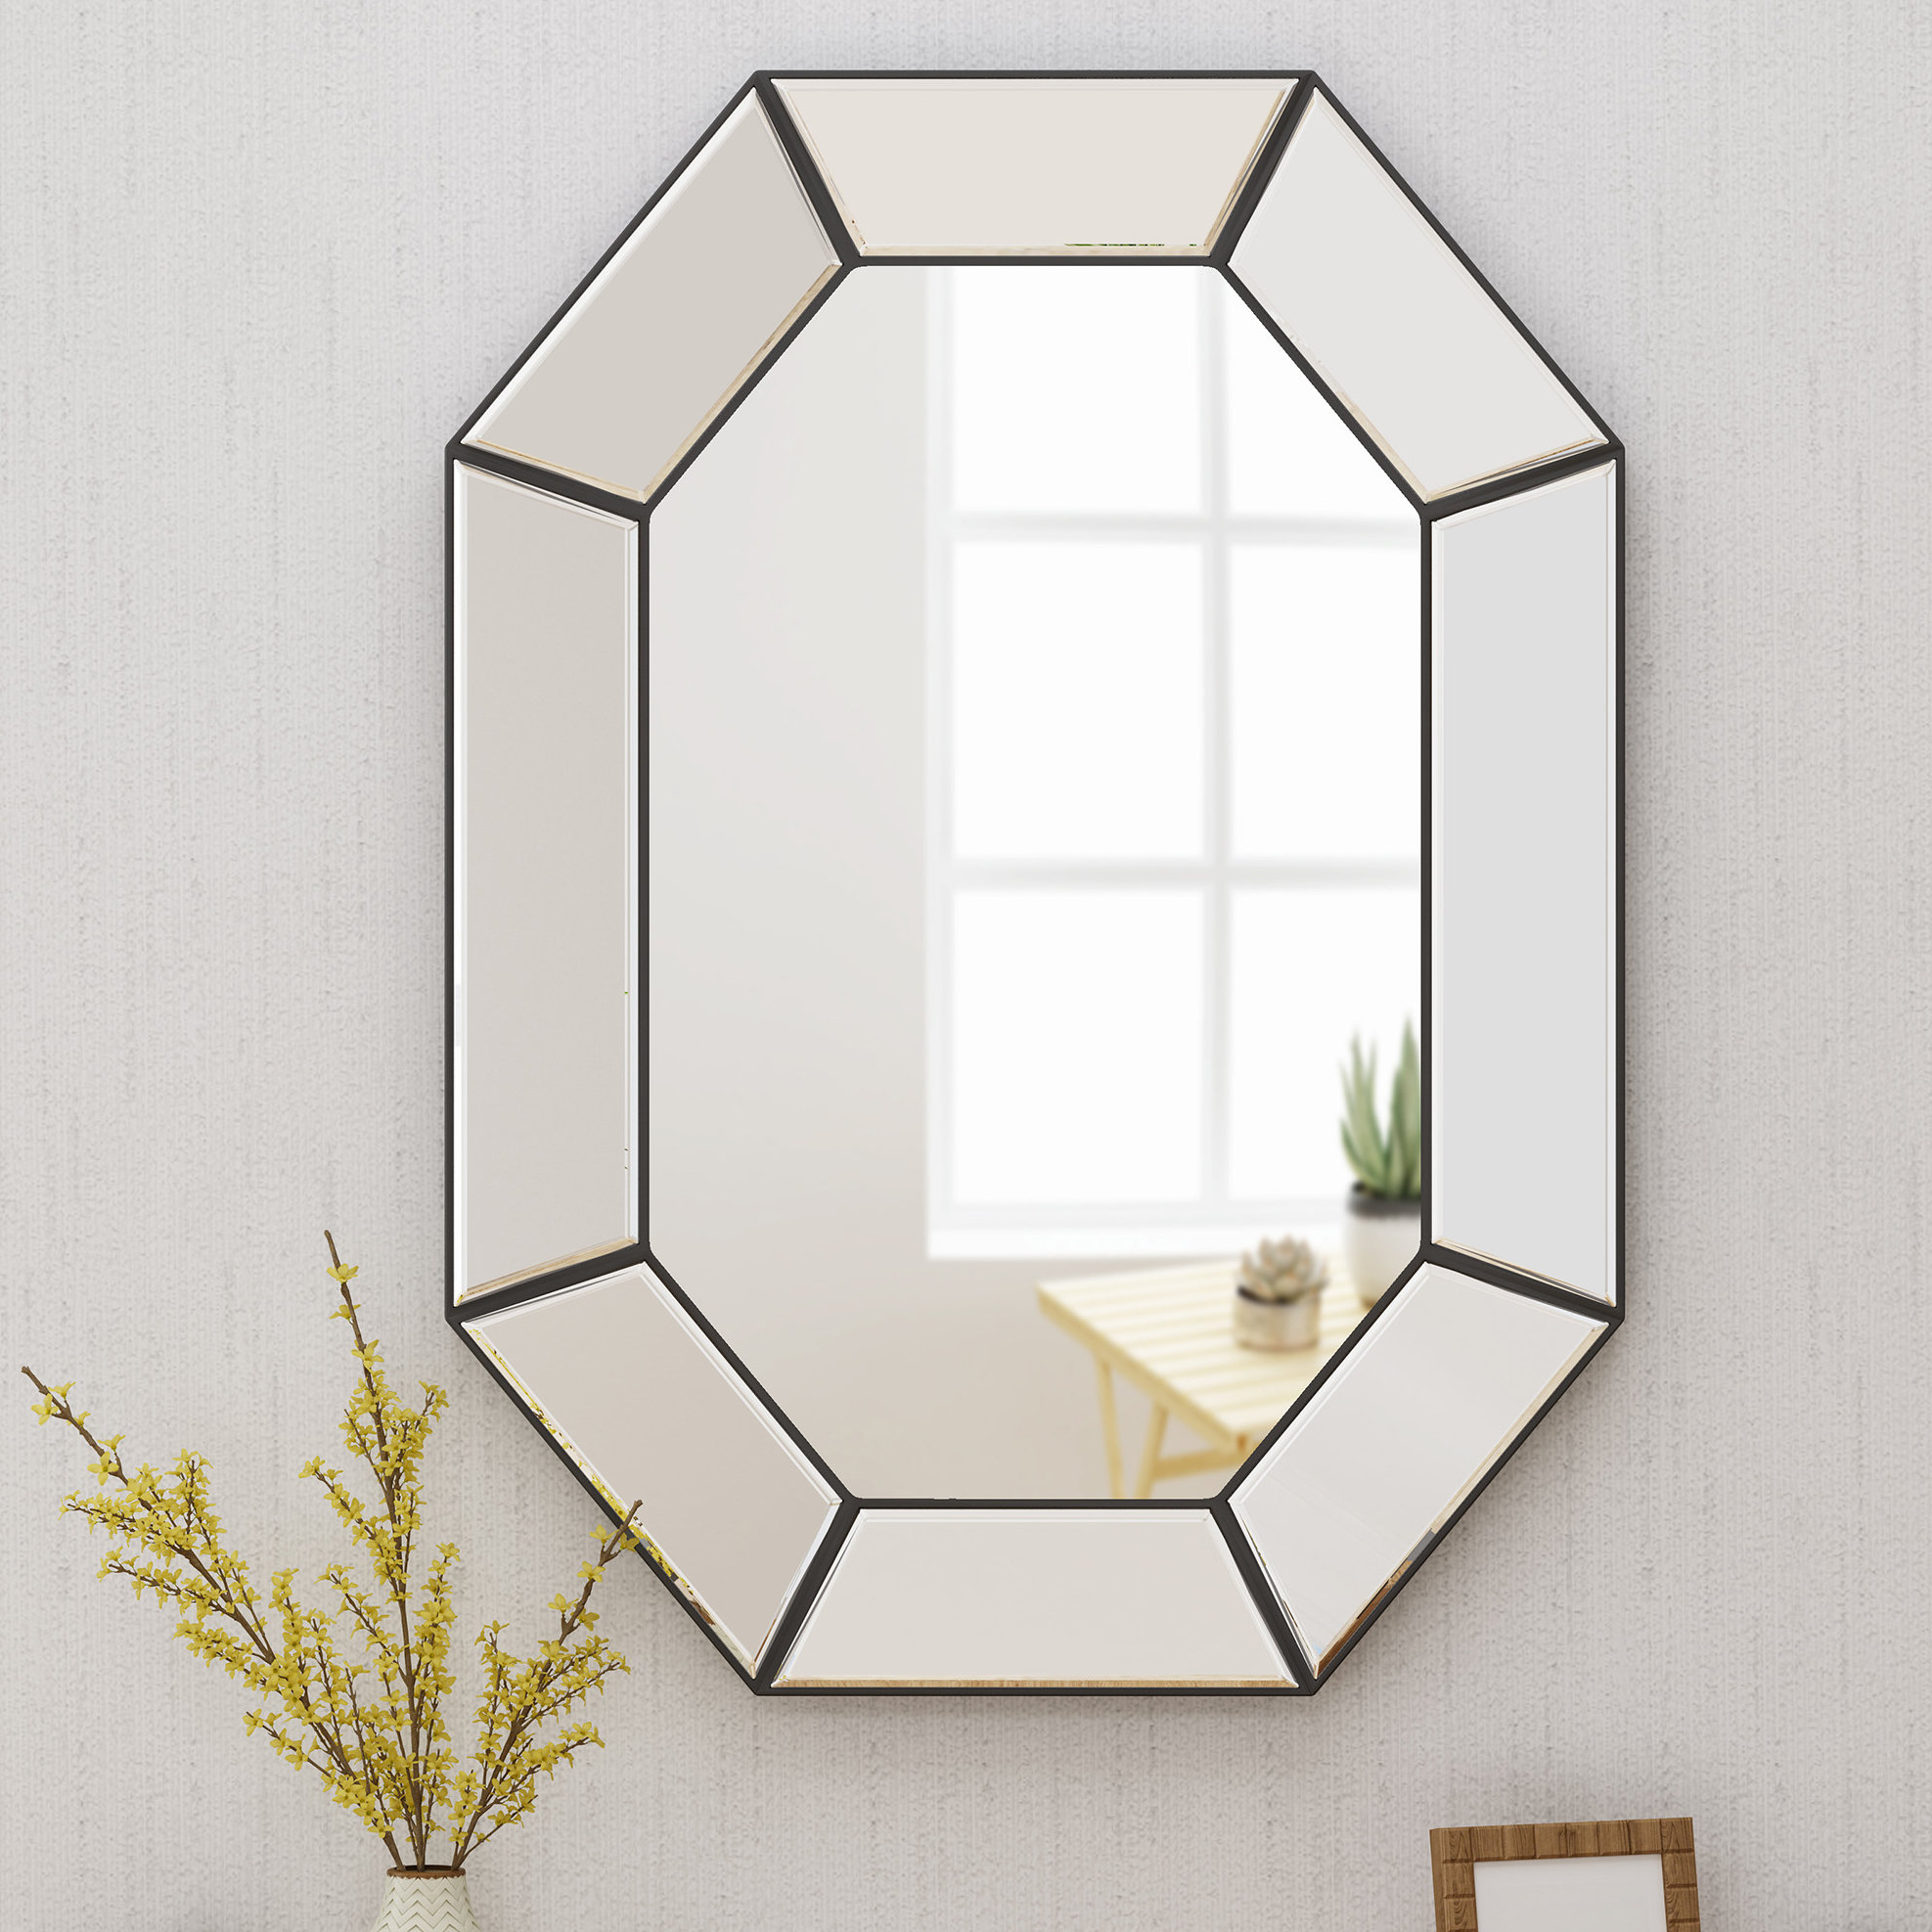 Haverstraw Accent Mirror Intended For Widely Used Minerva Accent Mirrors (Gallery 19 of 20)